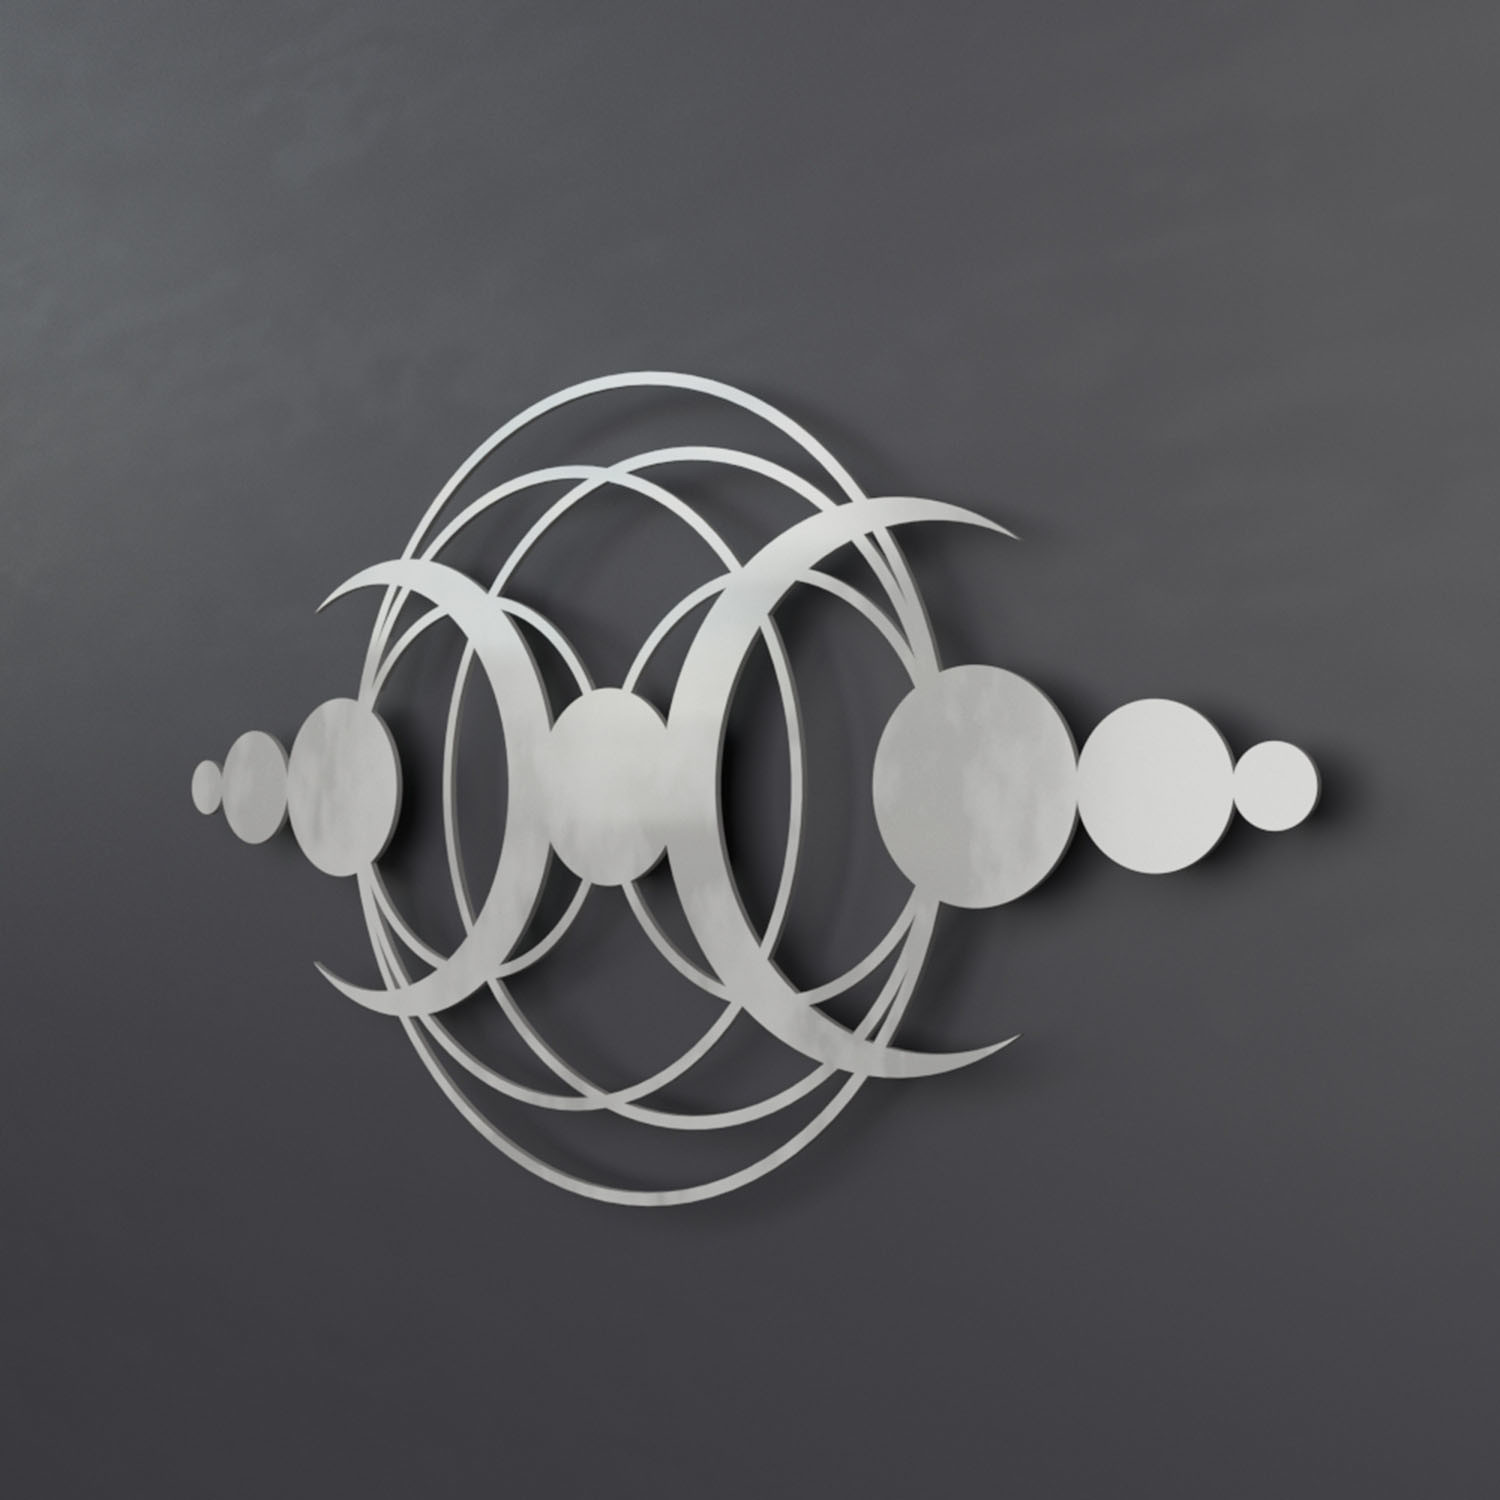 Crop Circle Moon II 3D Metal Wall Art